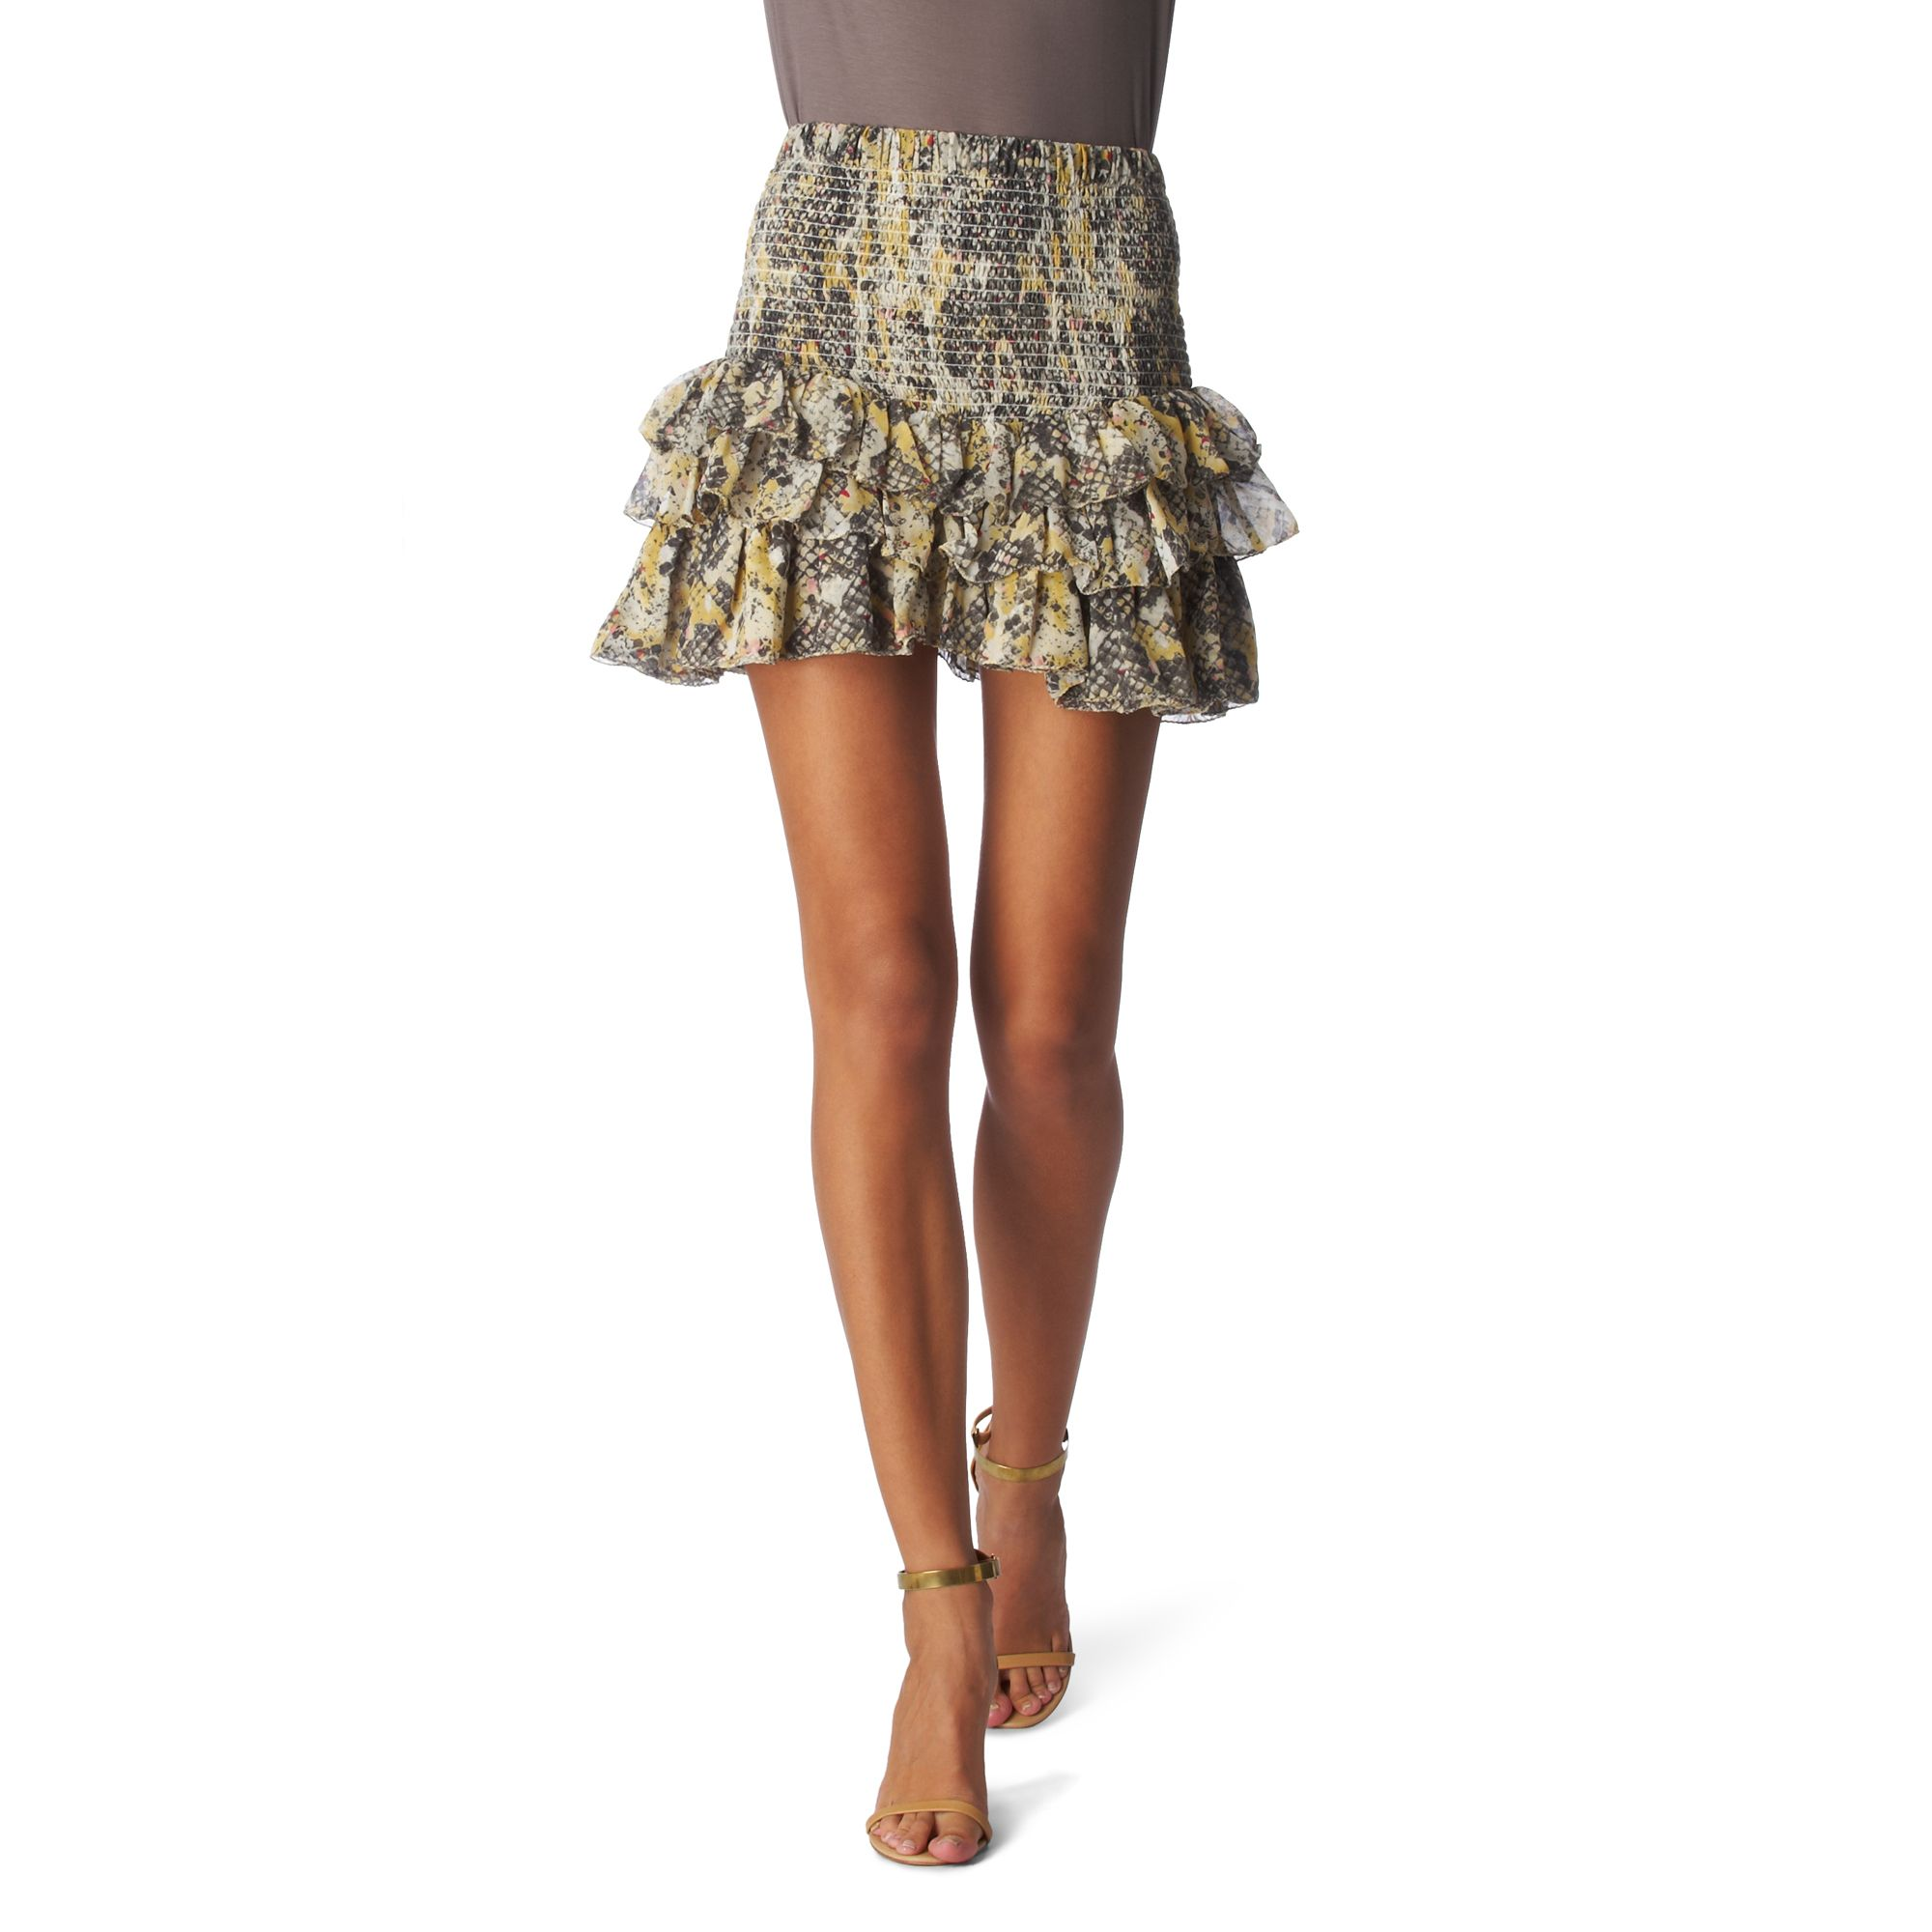 Isabel Marant skirts: Visit the online store and discover the collection of skirts from this season. Shop online now.